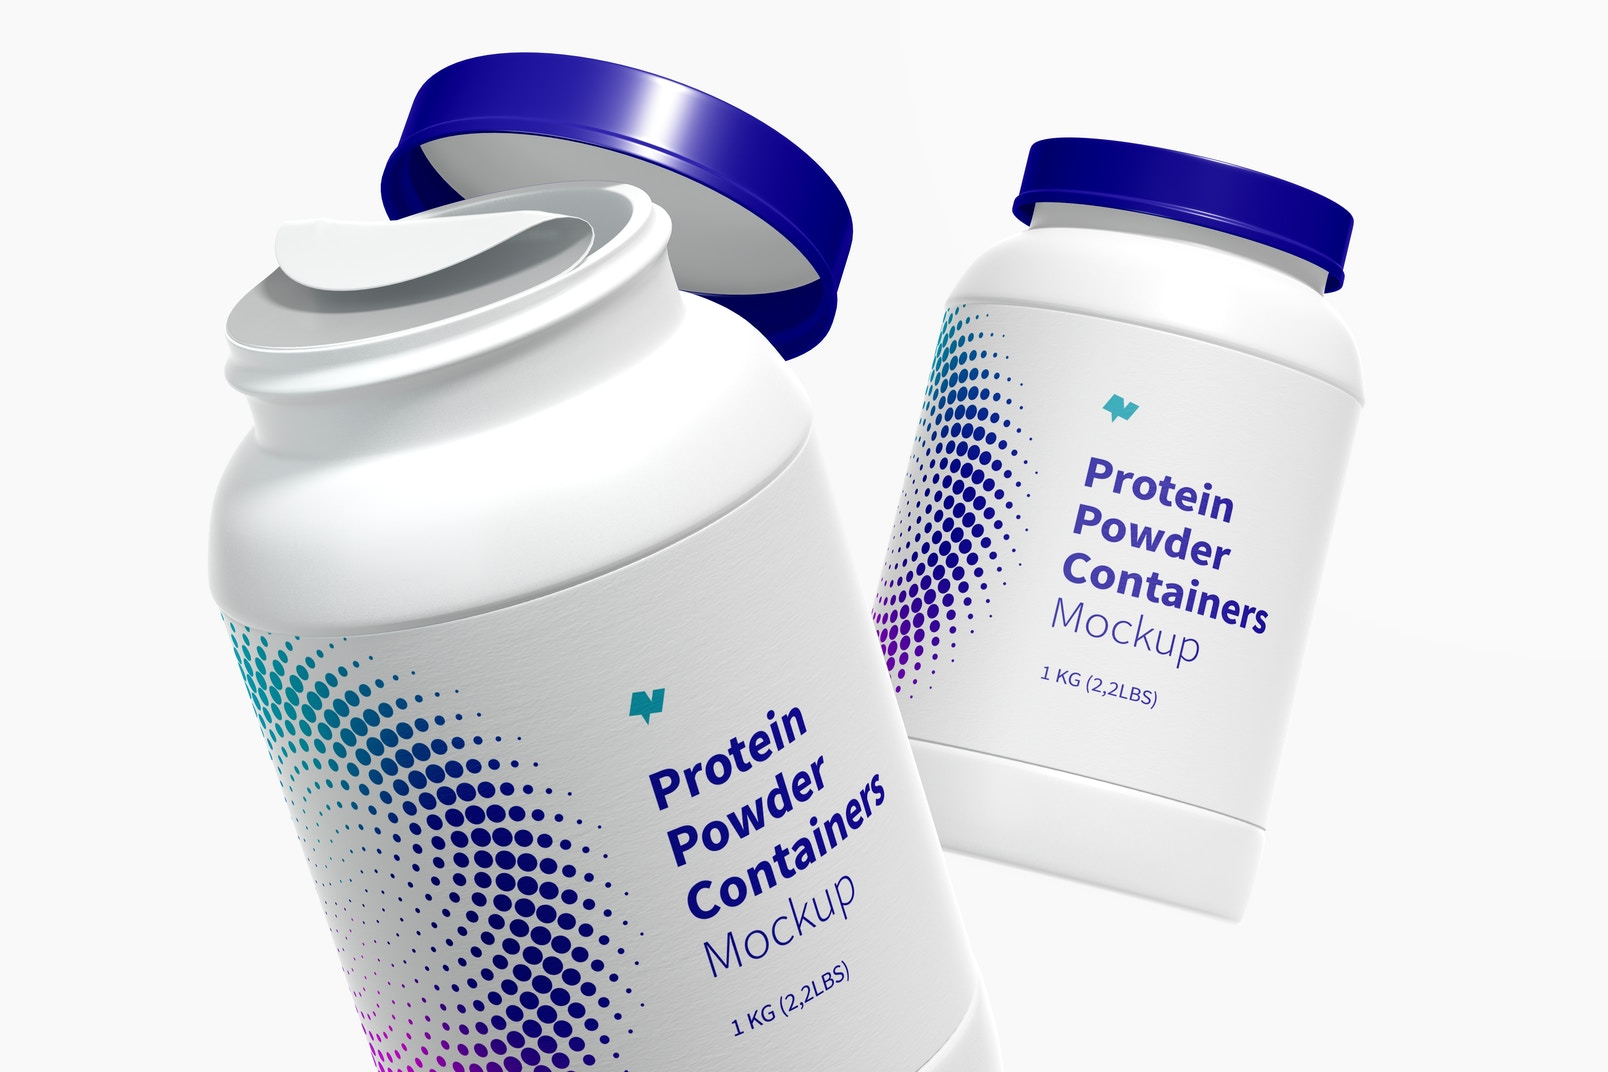 Protein Powder Container Mockup, Floating